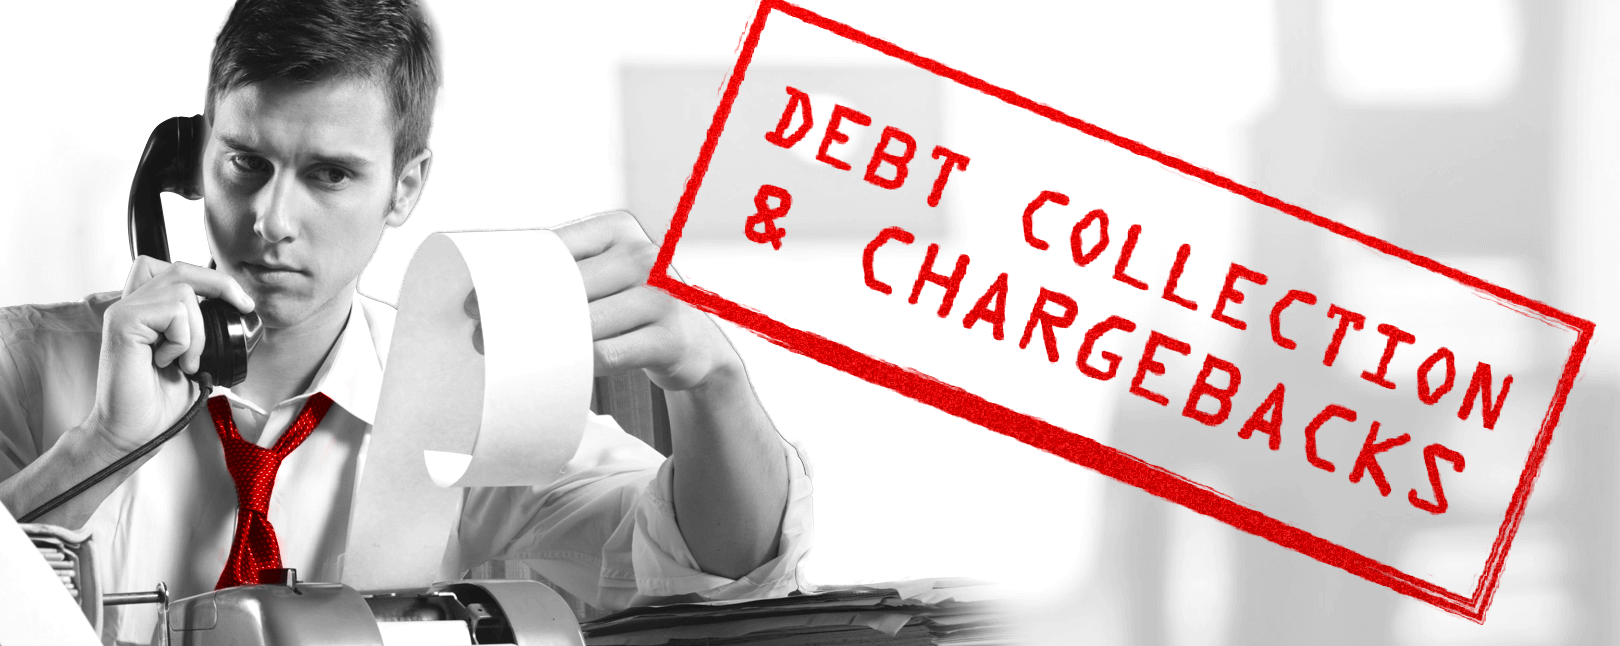 debt collection chargeback disputes rights for revenue recovery